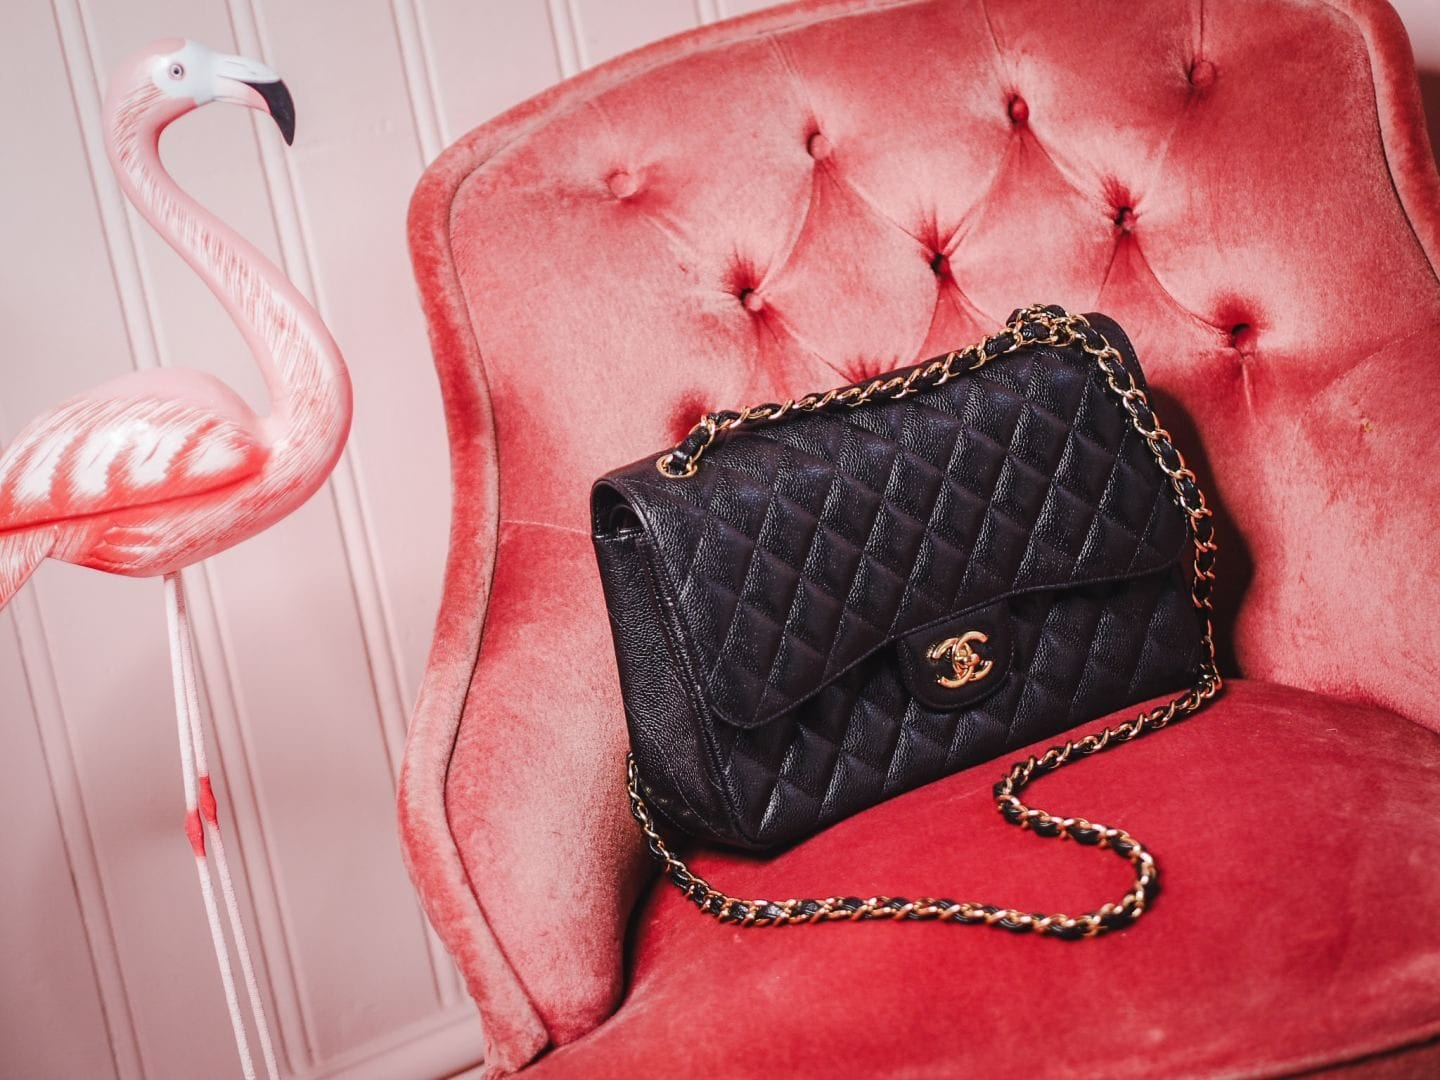 chanel jumbo handbag black caviar leather review gold hardware